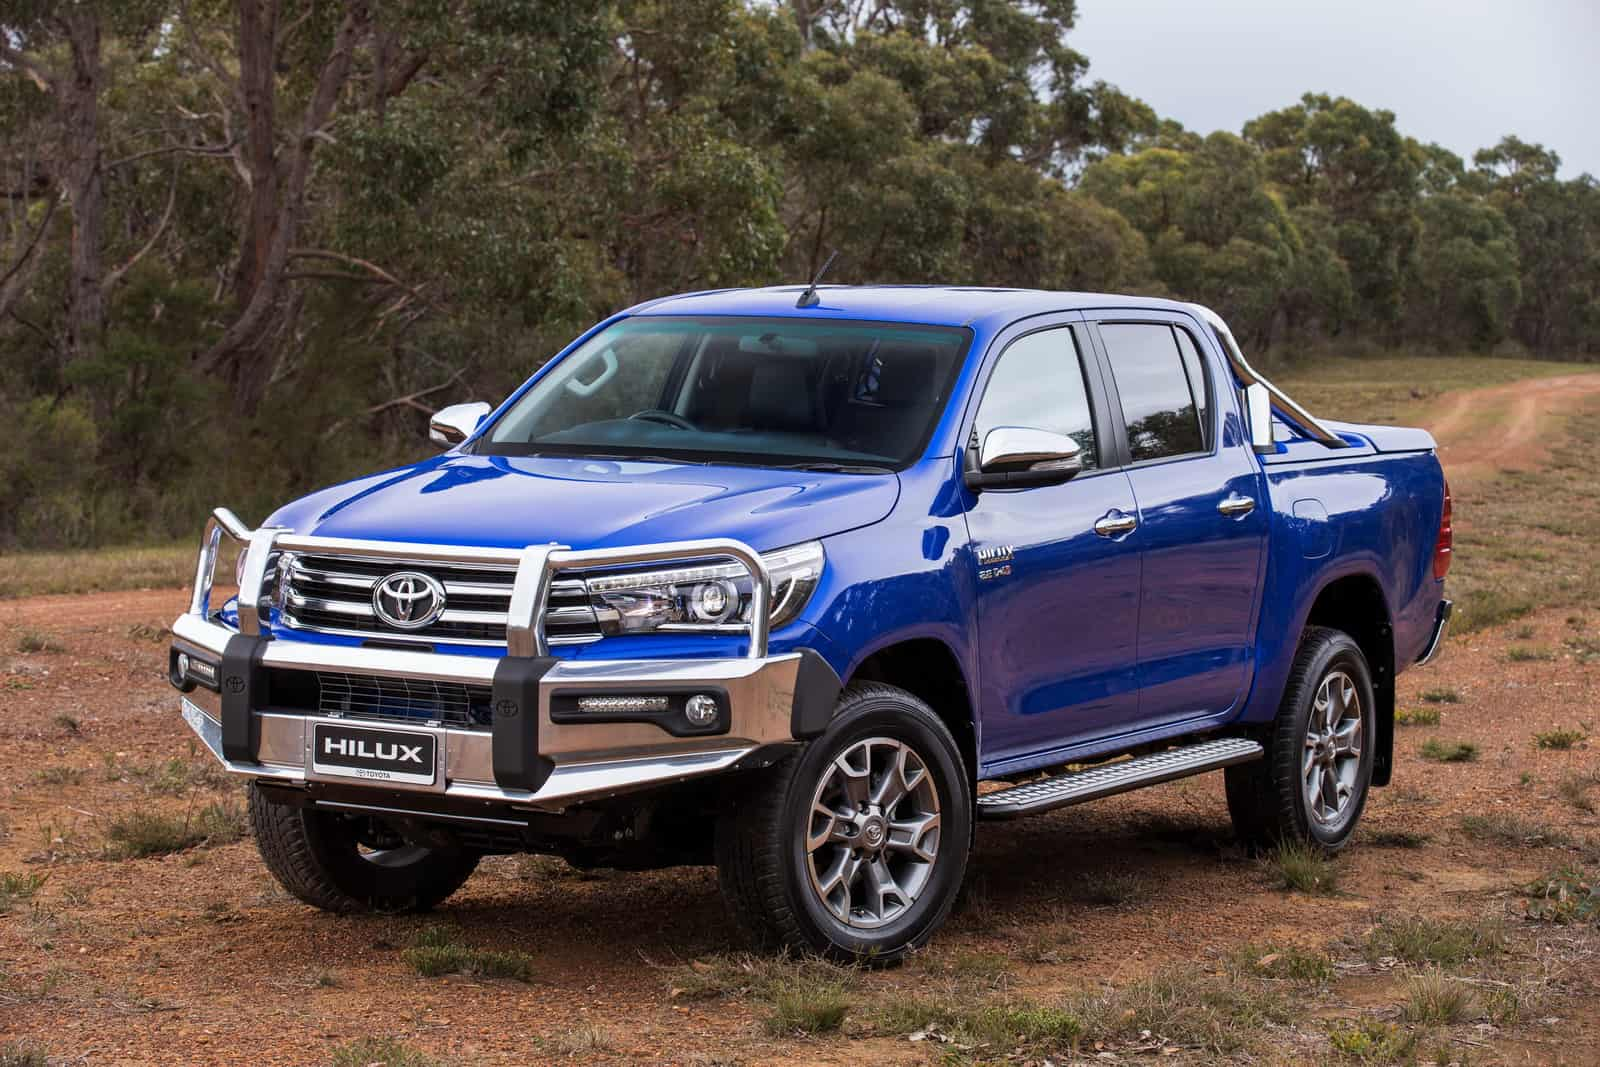 Toyota-Hilux - Strongest Car Ever?